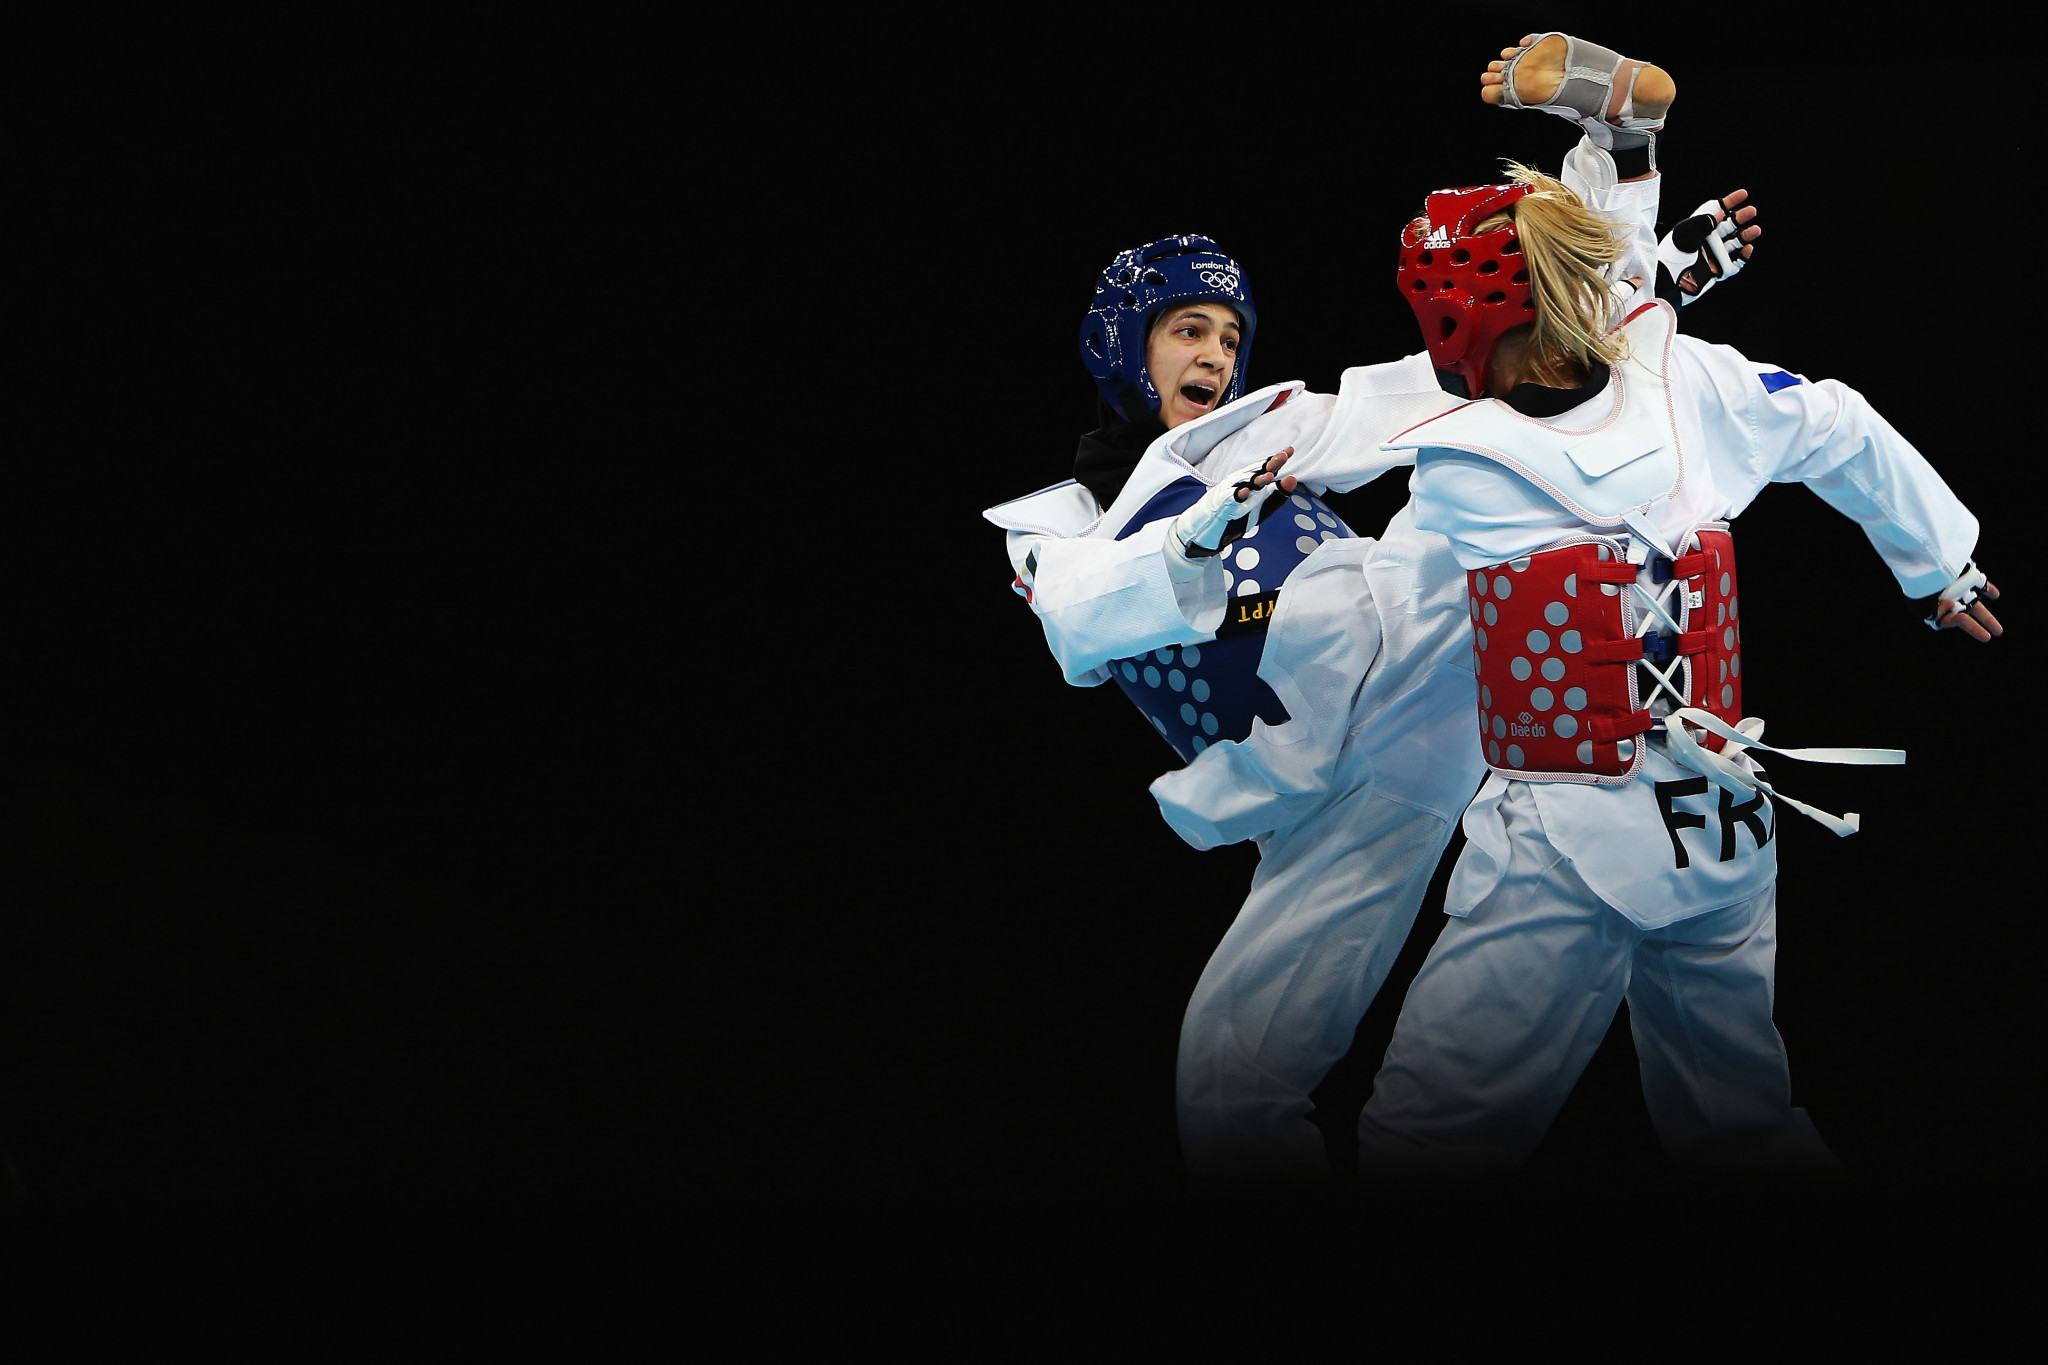 The Paris 2024 taekwondo venue will be named after Alice Milliat ©Getty Images